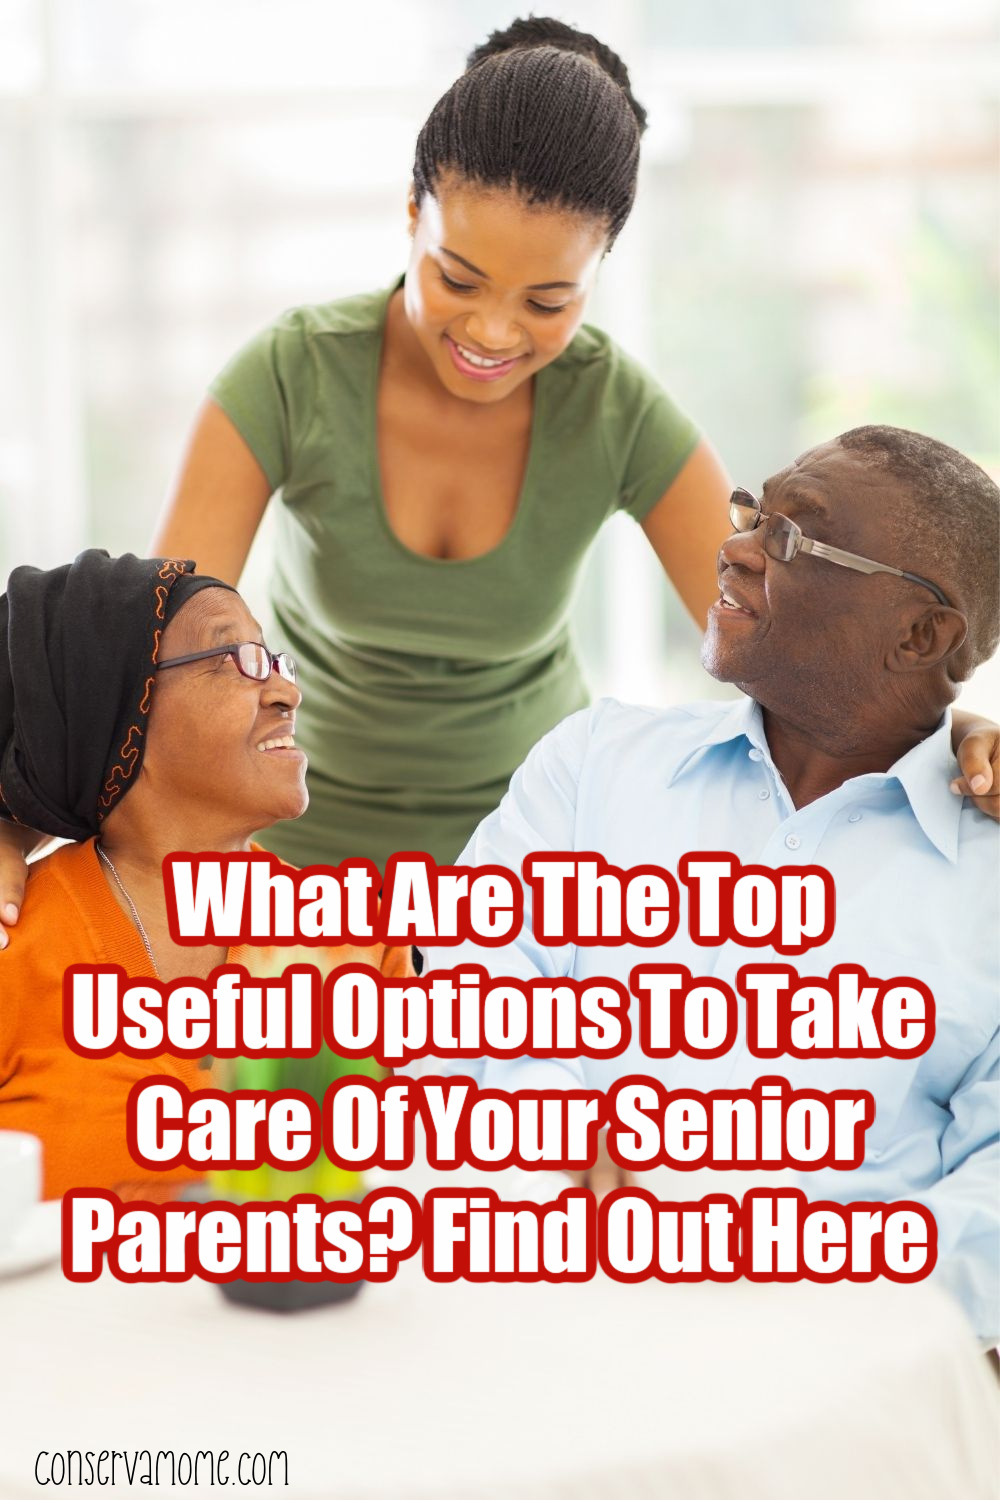 What Are The Top Useful Options To Take Care Of Your Senior Parents?